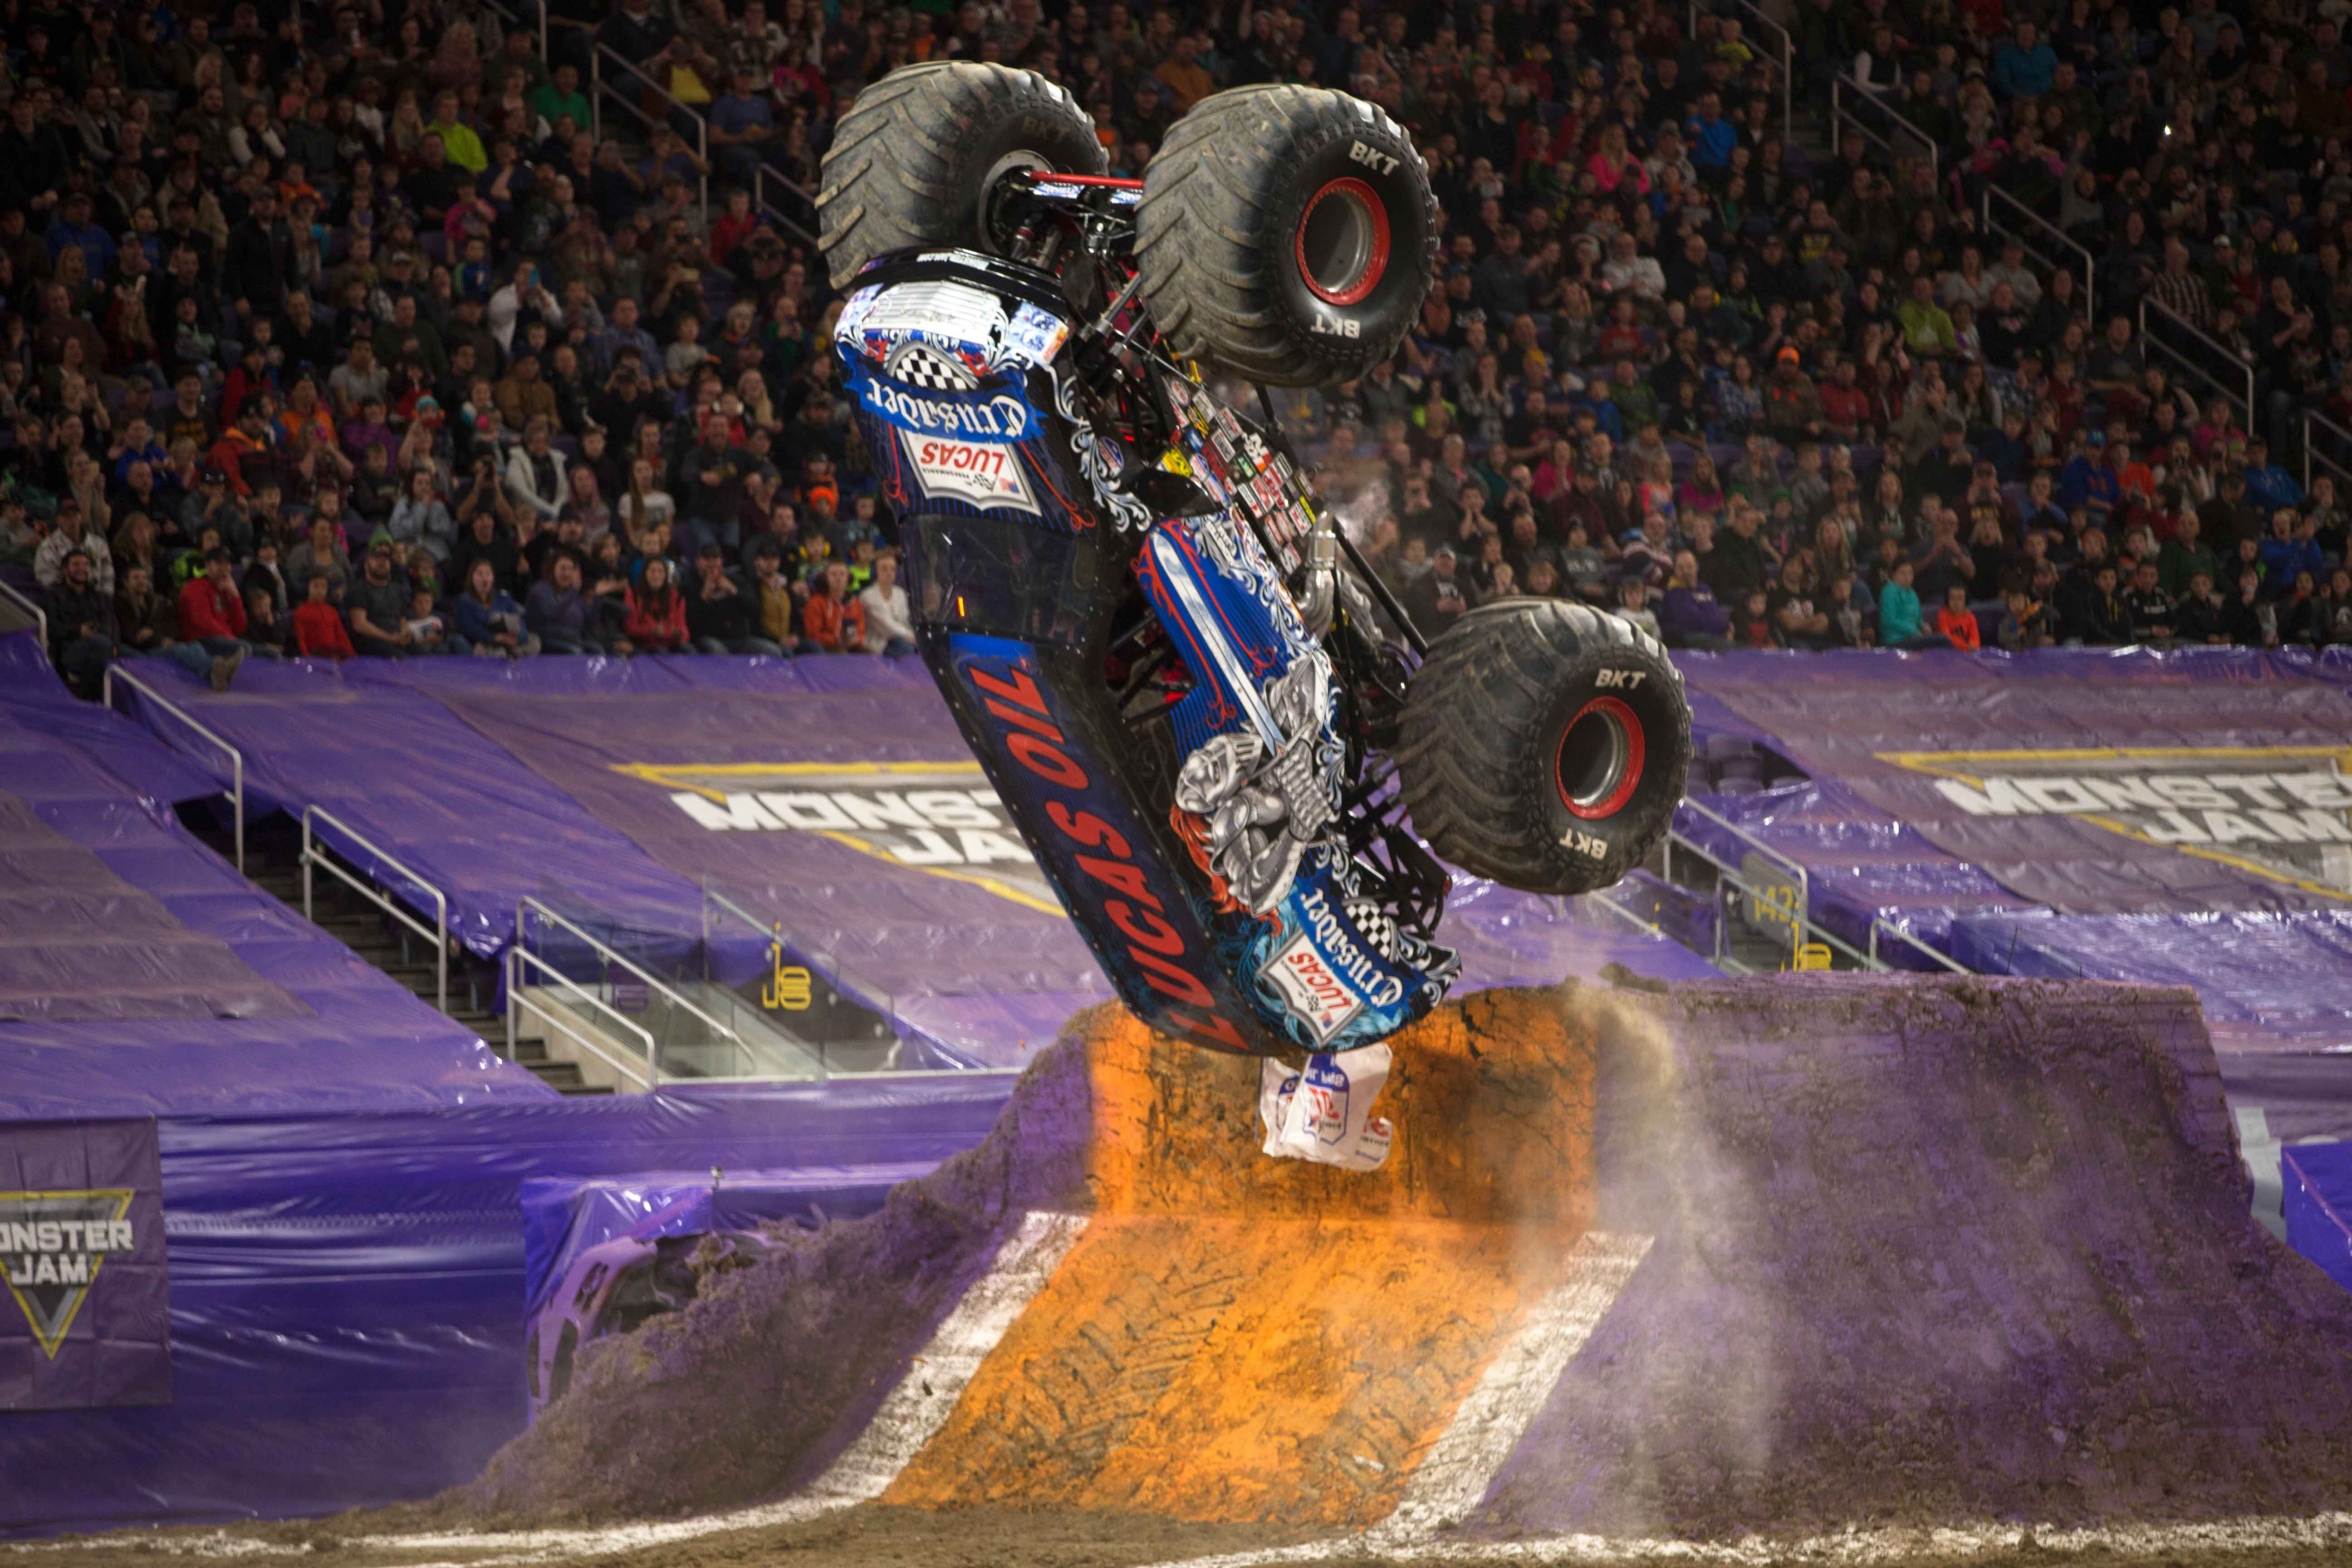 Lucas Oil CrusaderTM driver Linsey Weenk went for a backflip during his Freestyle run! Do you think he nailed it? (Photo by Eric Stern)